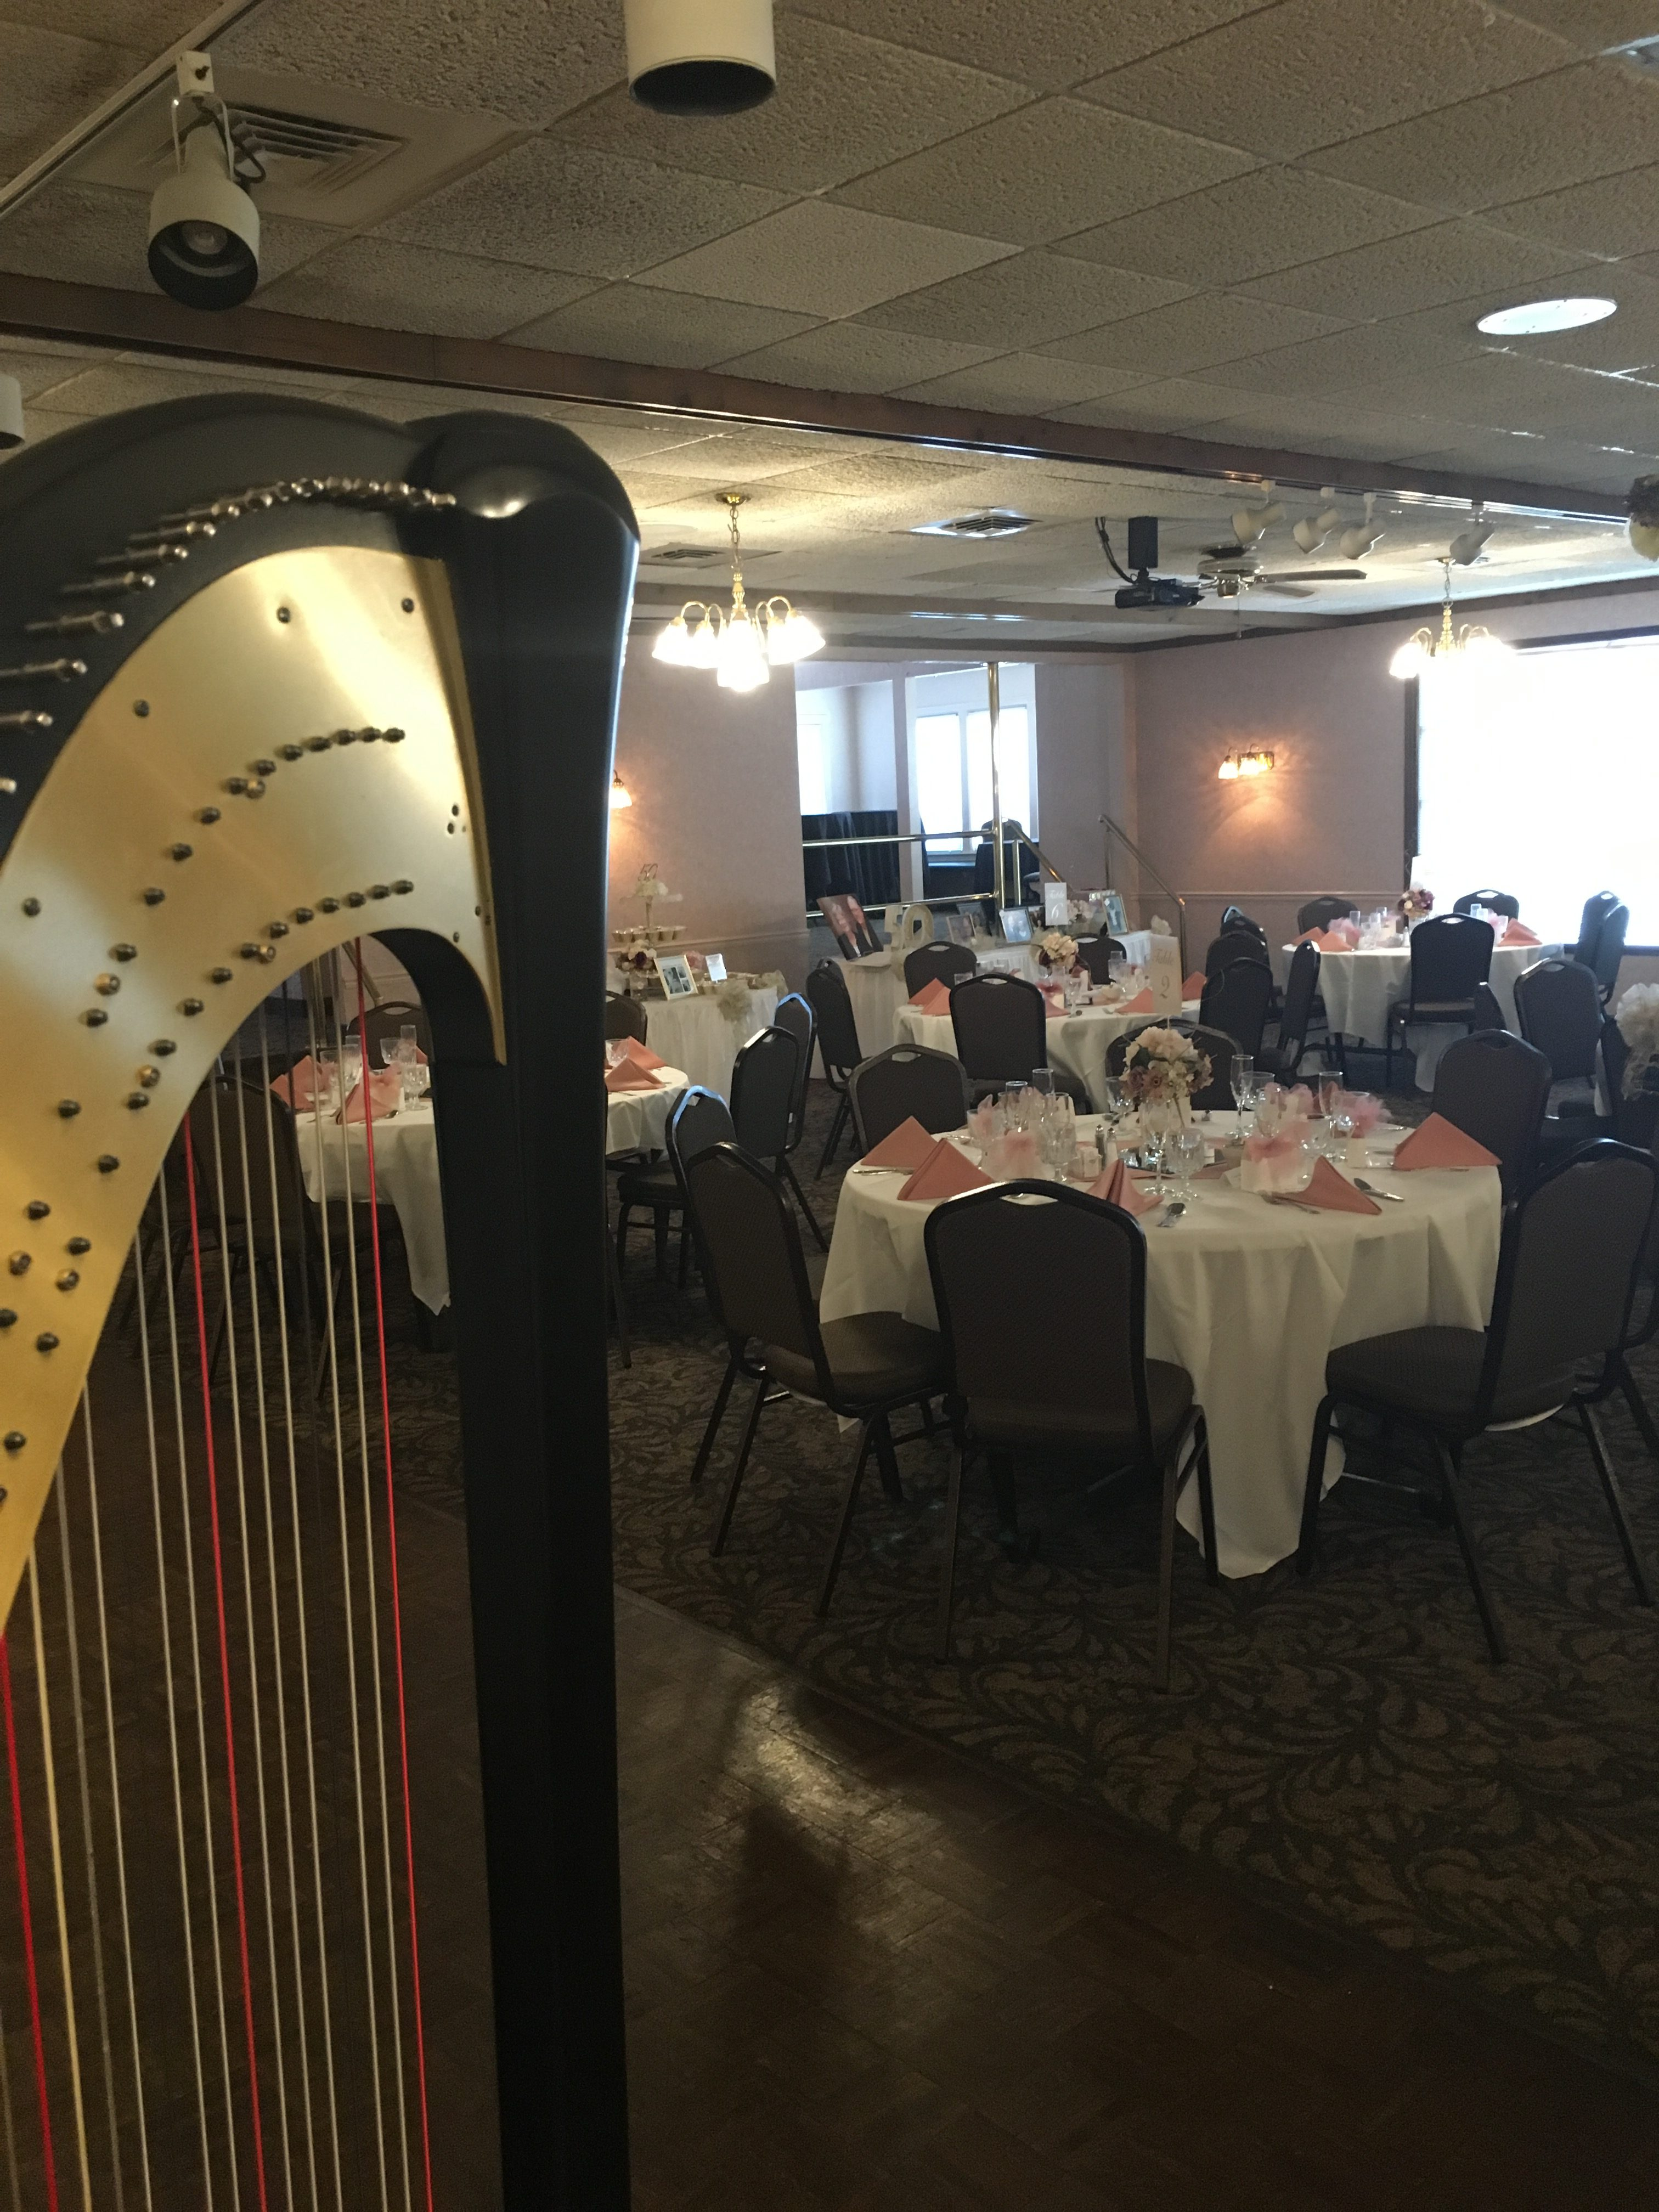 Harp Music for a Vow Renewal